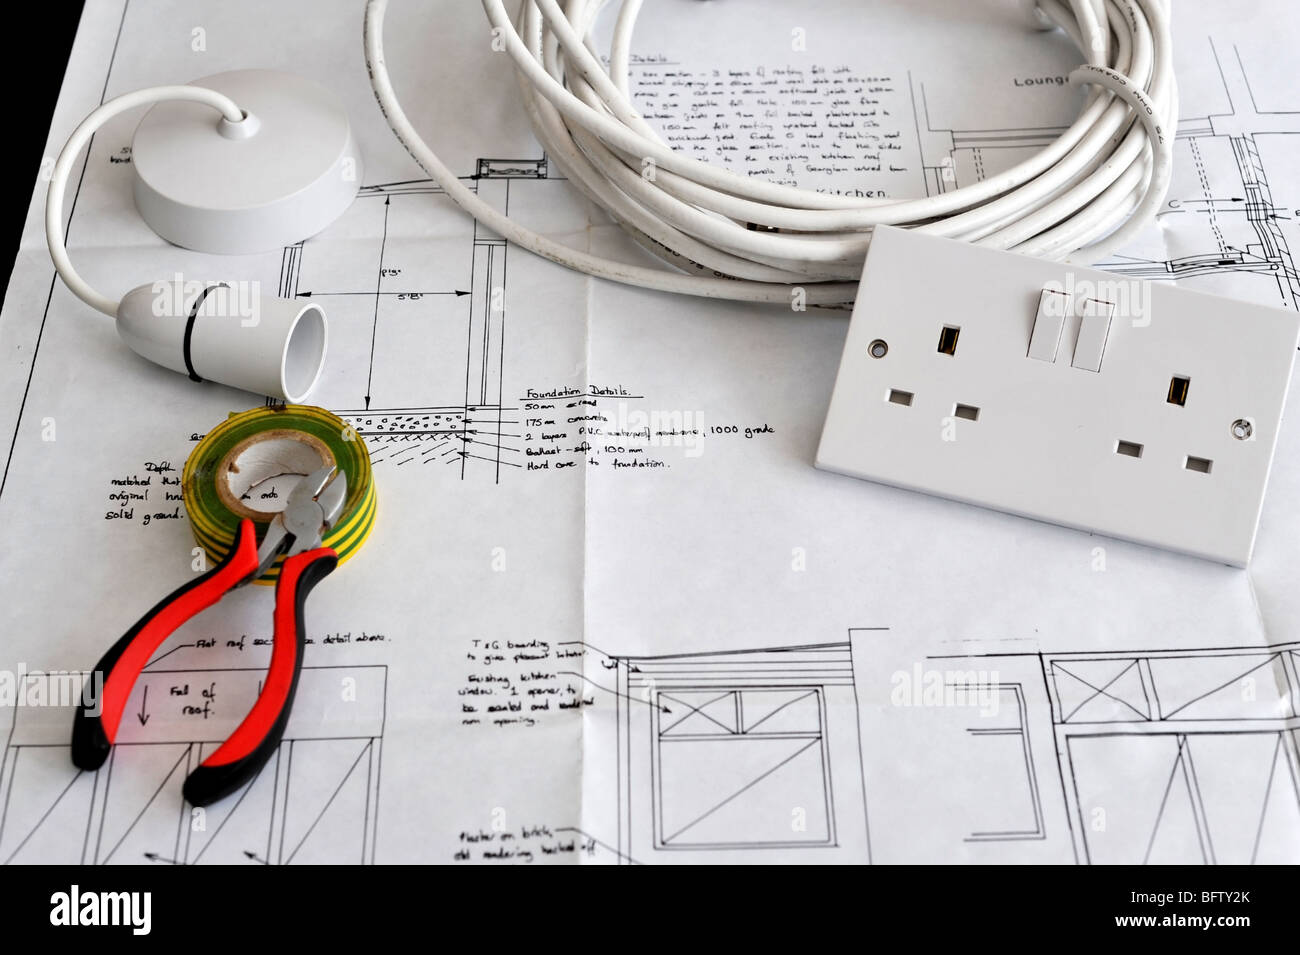 electrical plans for new homes. Blueprint plans of home building and construction with electrical items